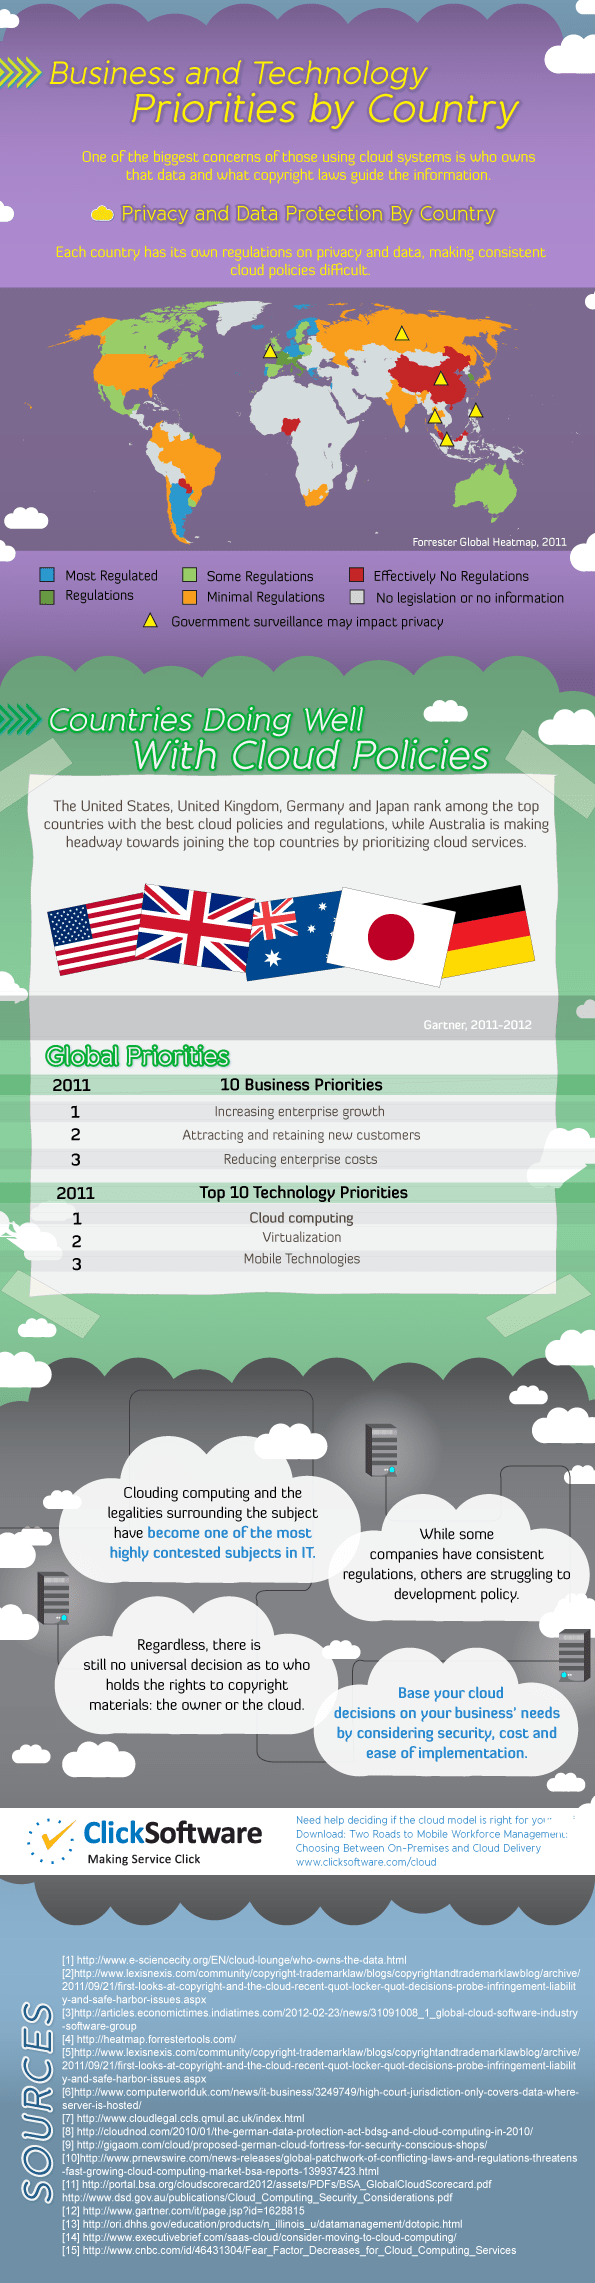 cloud policies infographic